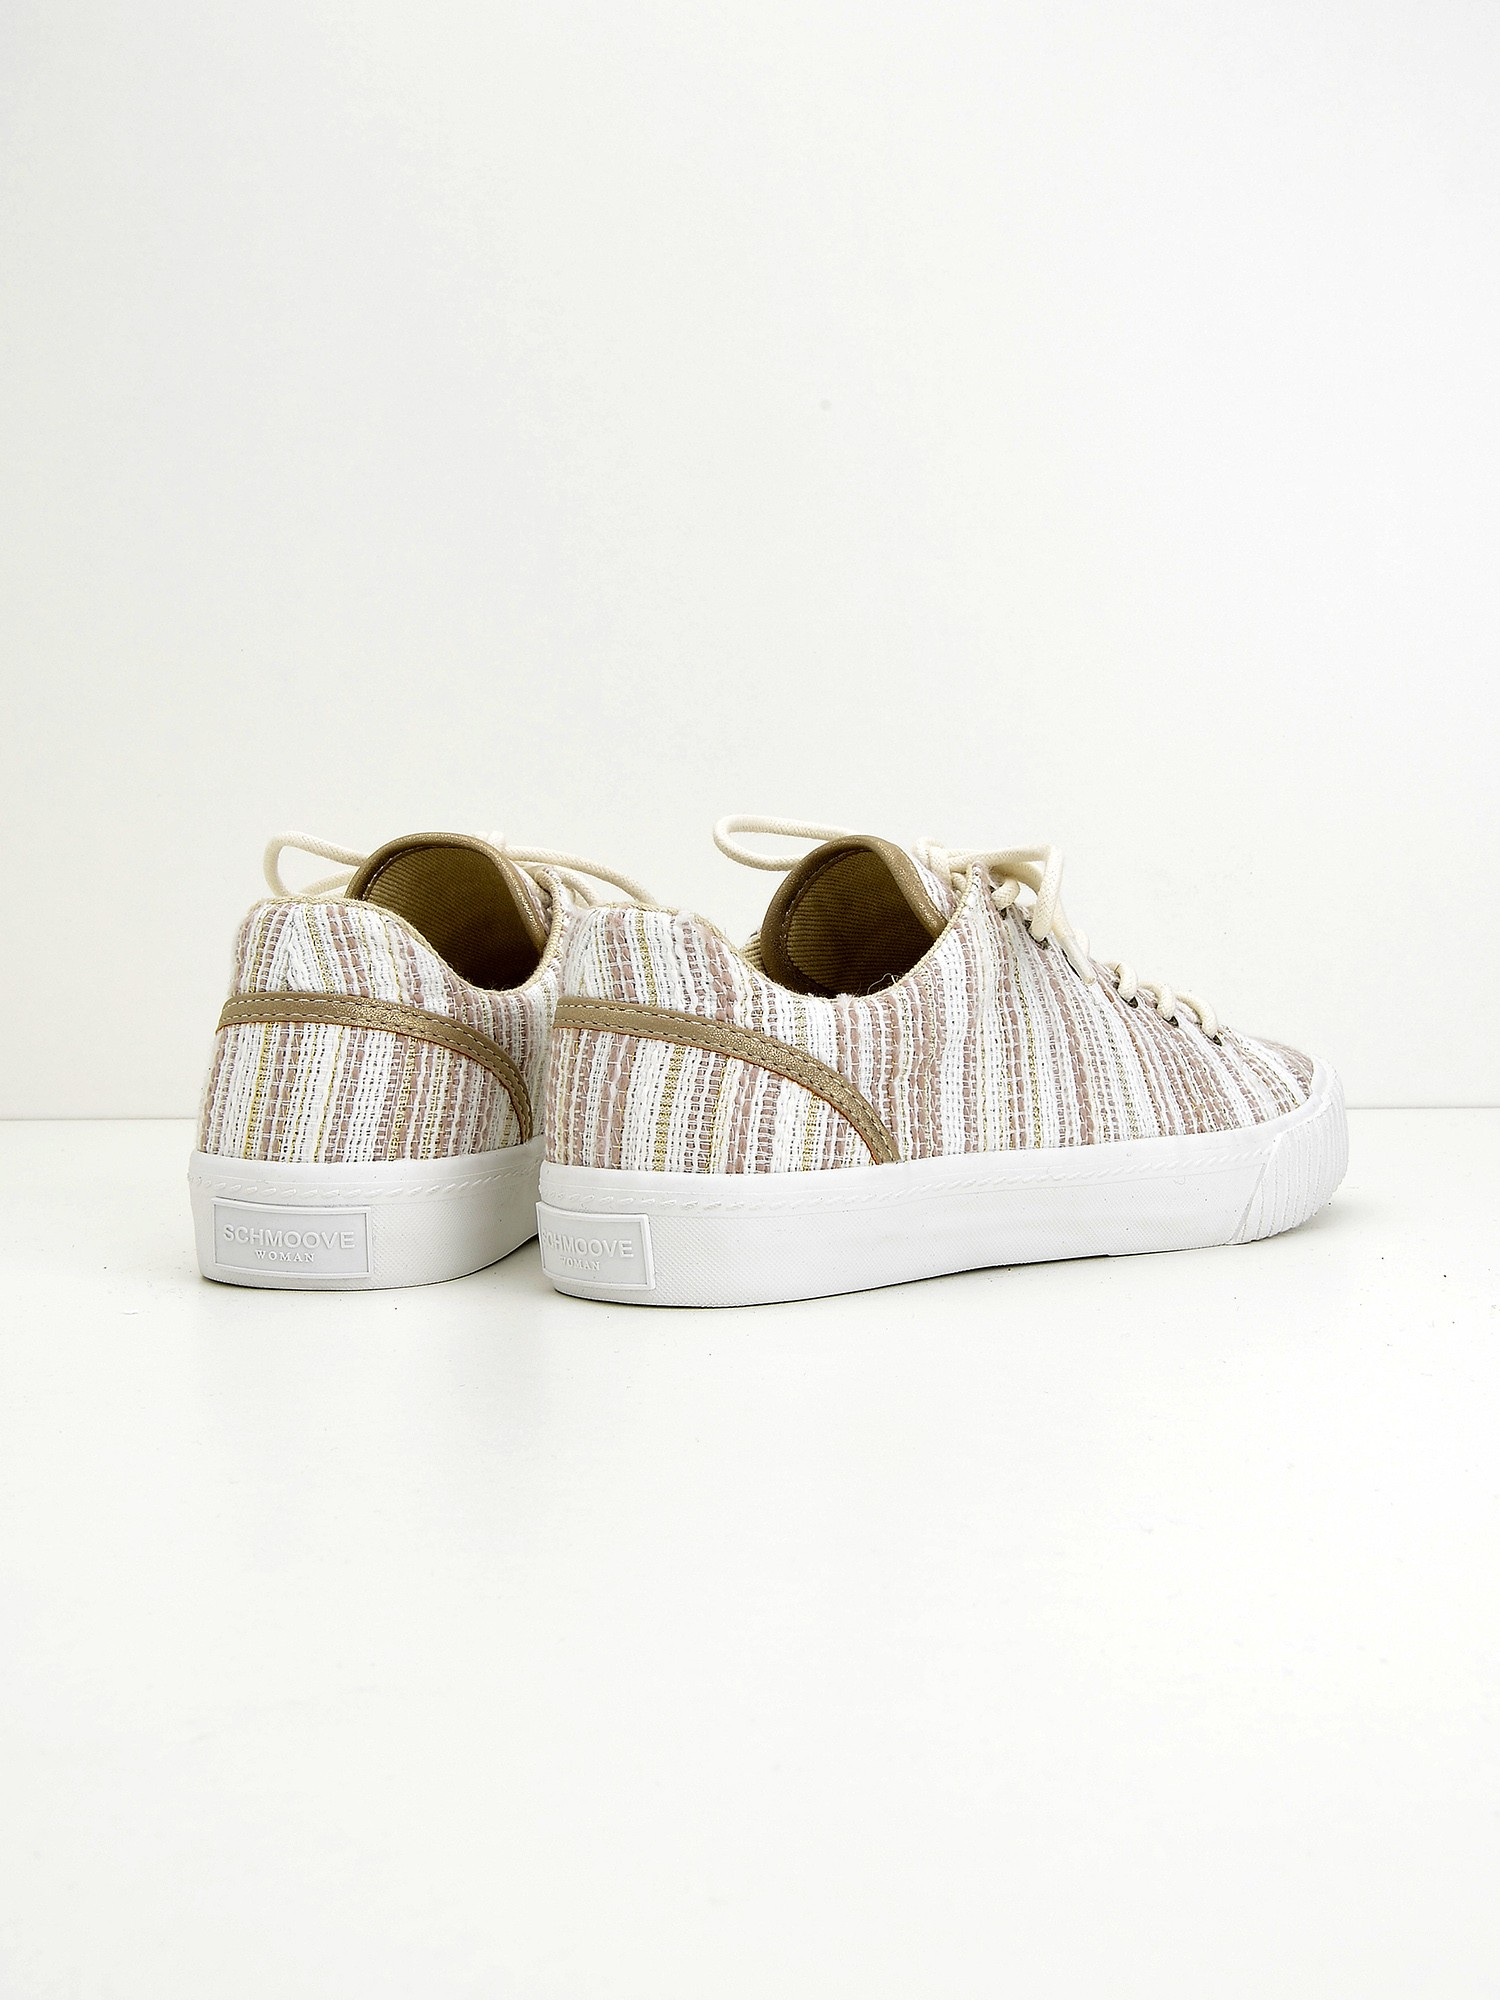 Wave Tennis W Lima, Baskets Femmes, Beige (Naturel), 38 EUSchmoove